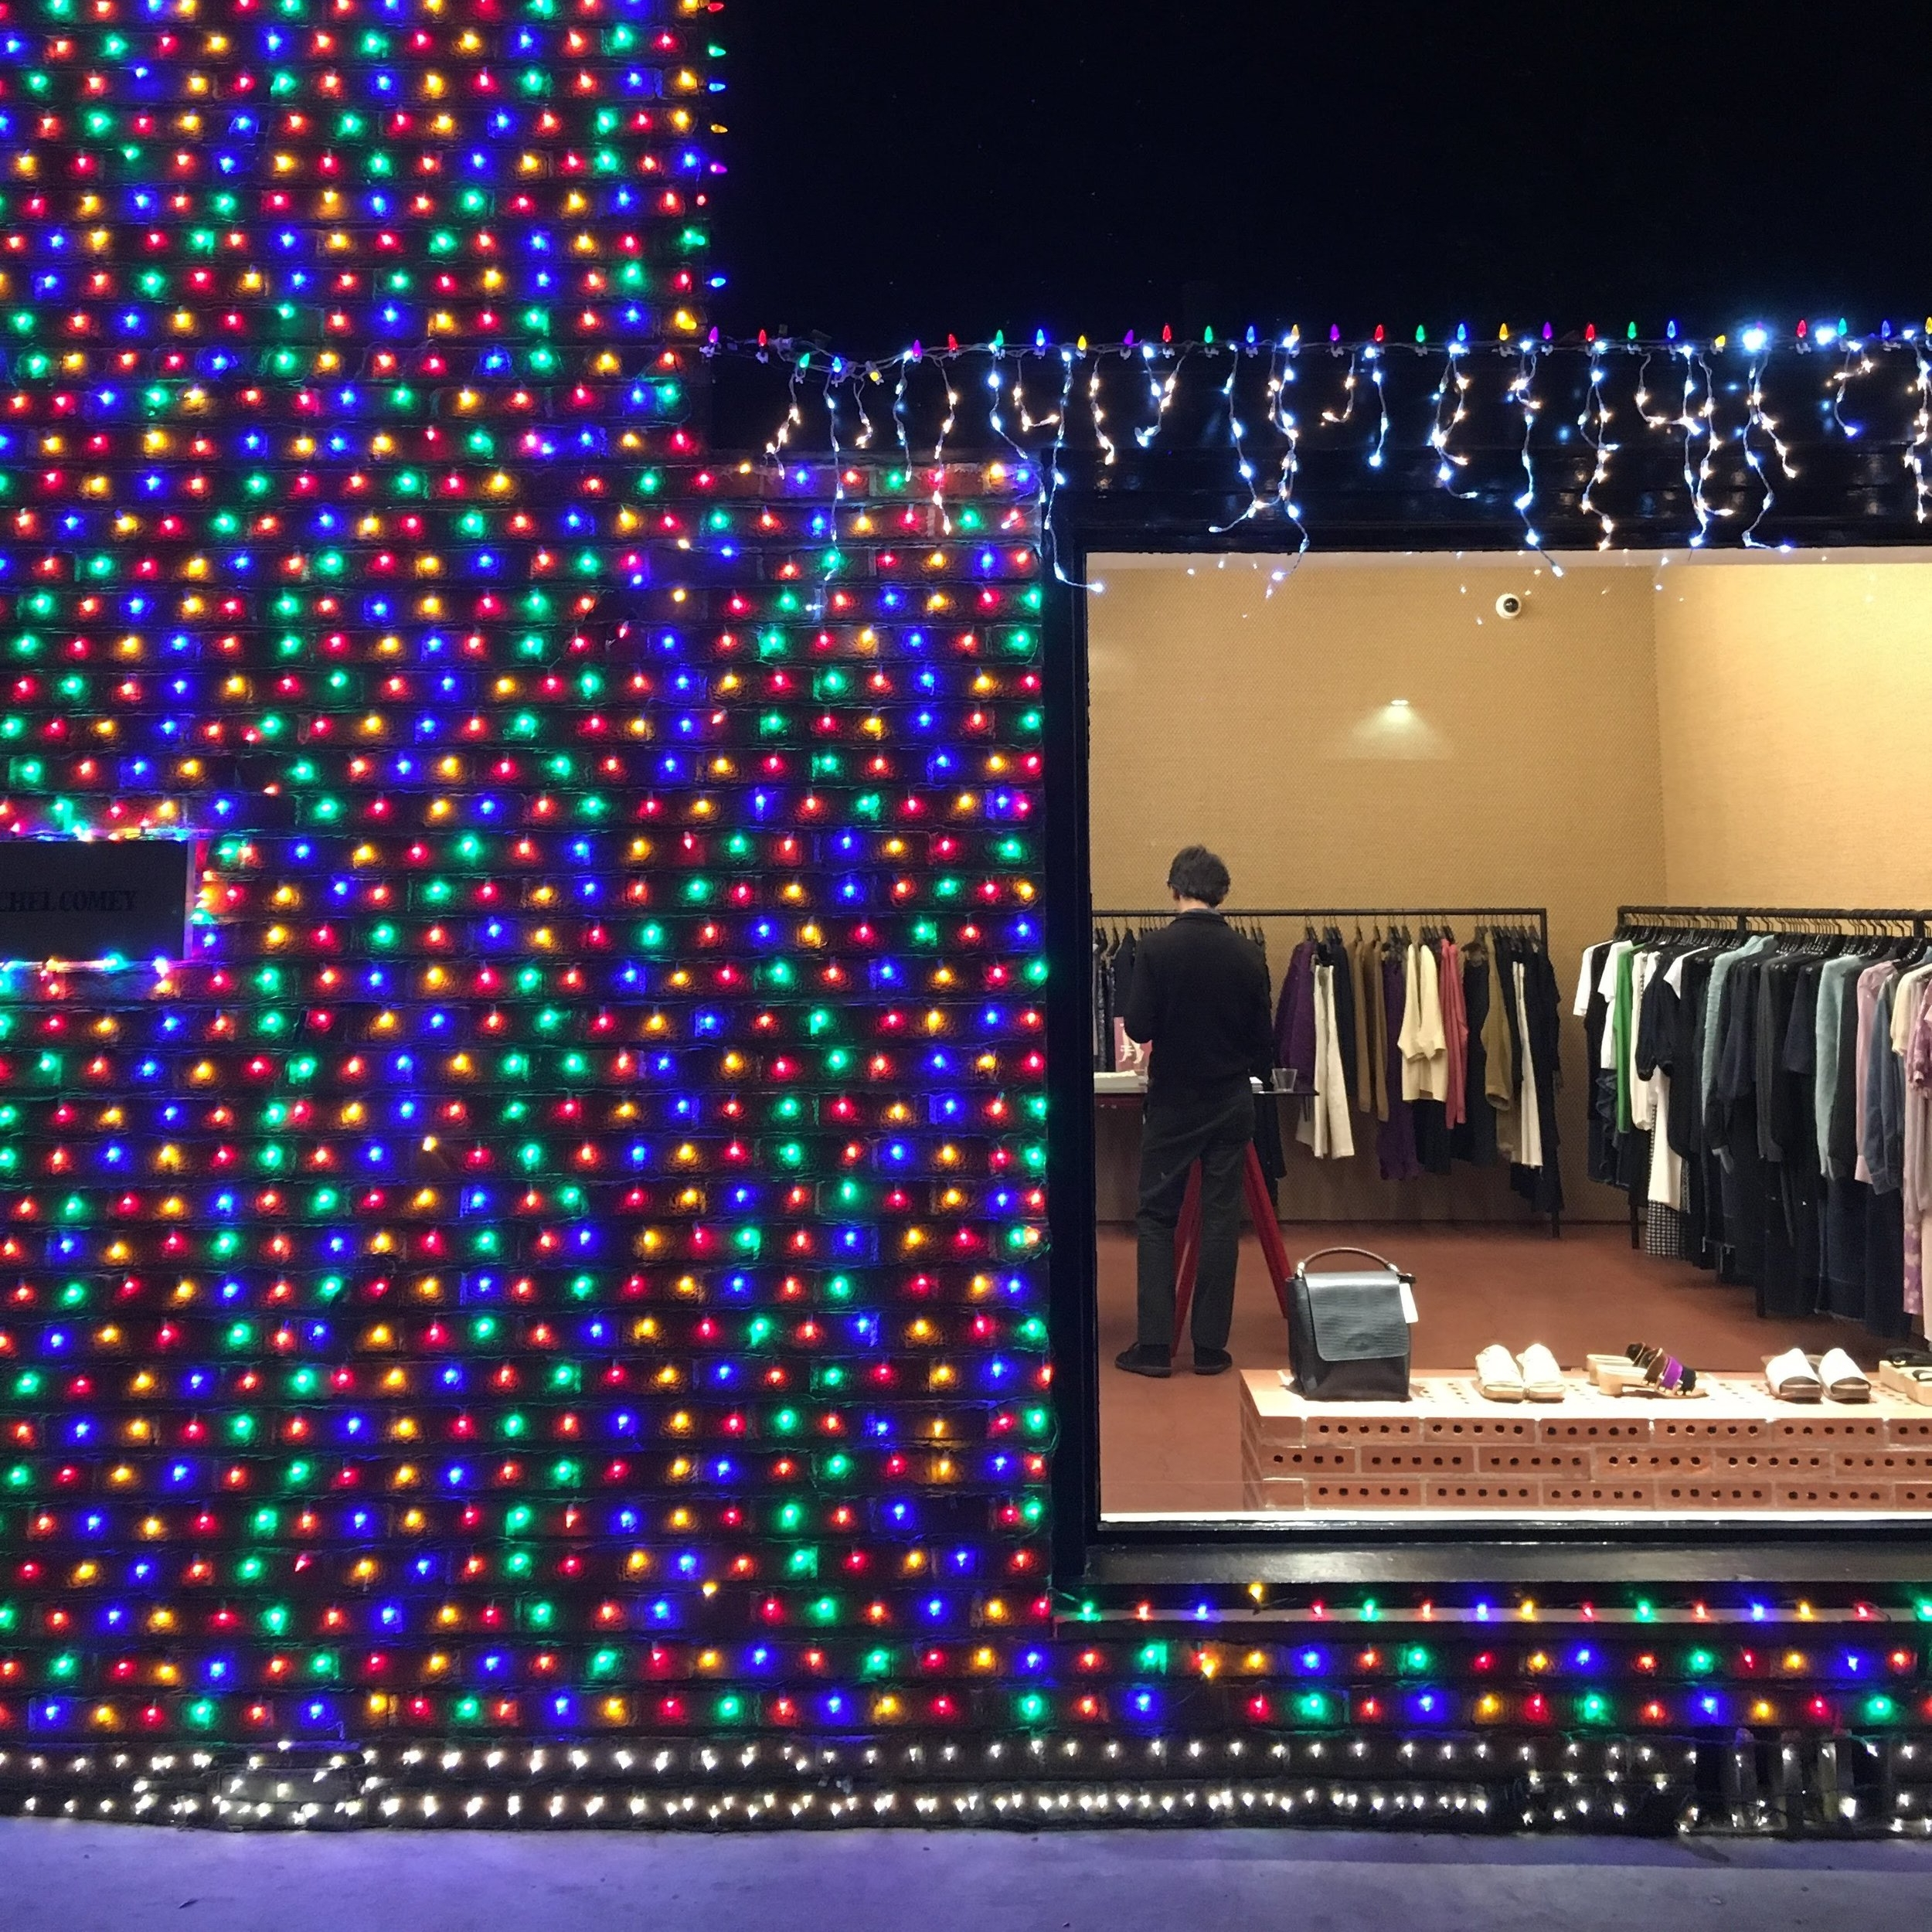 Holiday Display for Rachel Comey, Melrose Pl